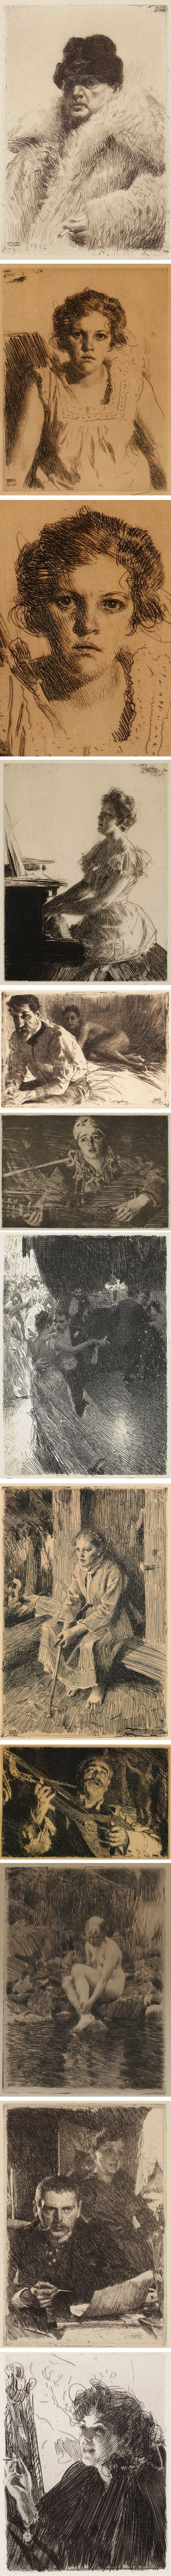 Etchings by Anders Zorn